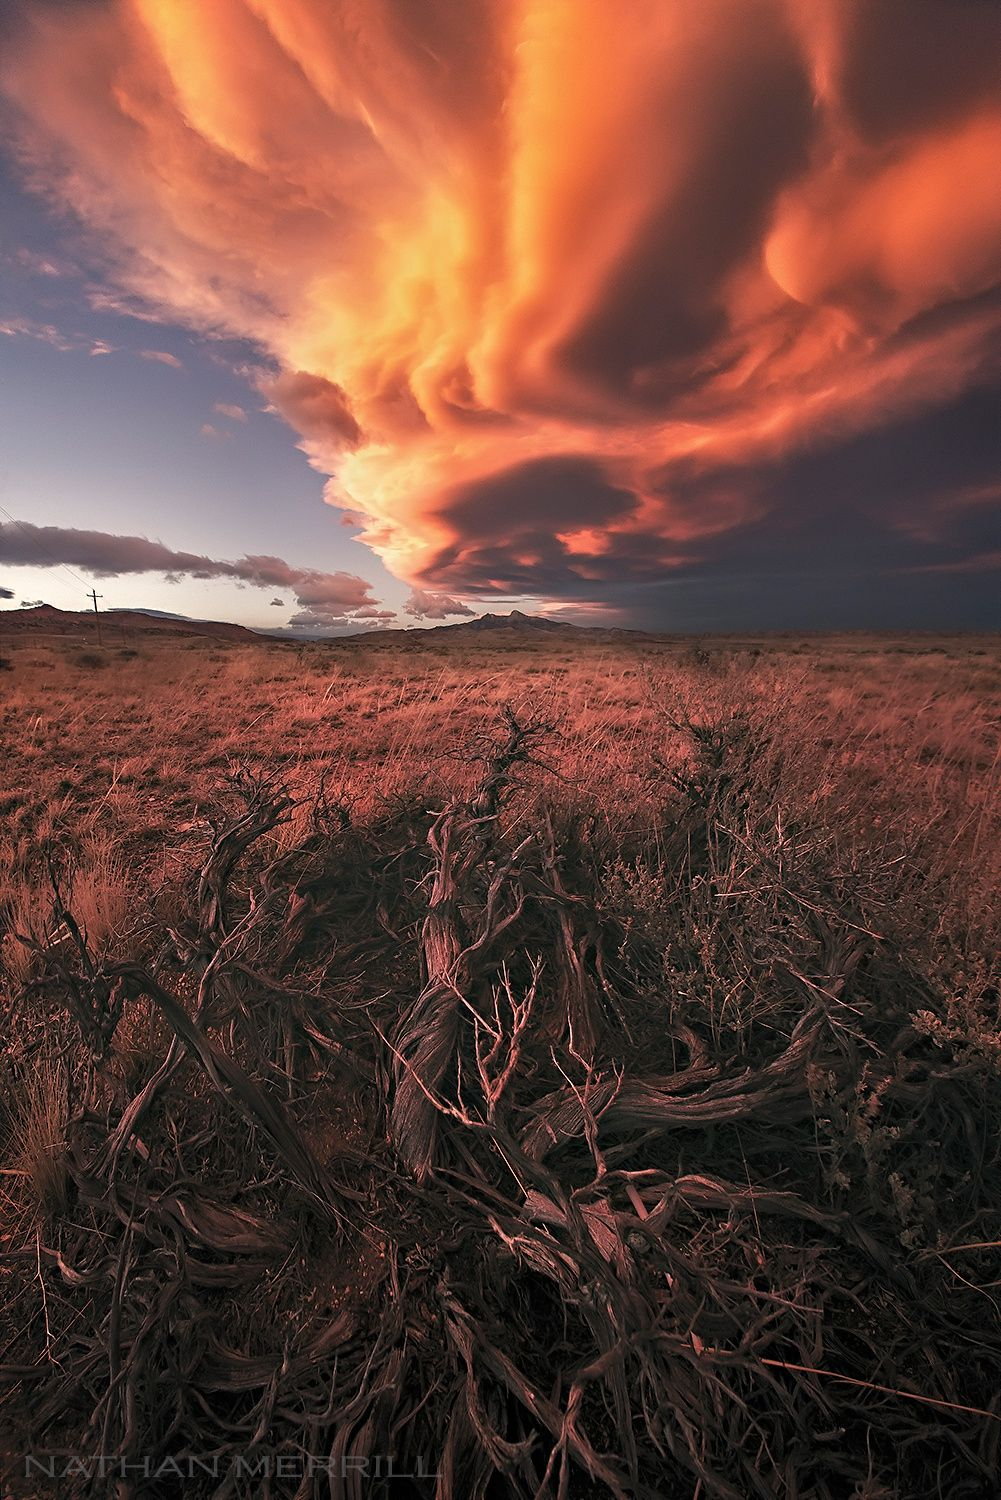 ~~Sageticular | lenticular clouds, Wyoming | by Nathan Merrill~~